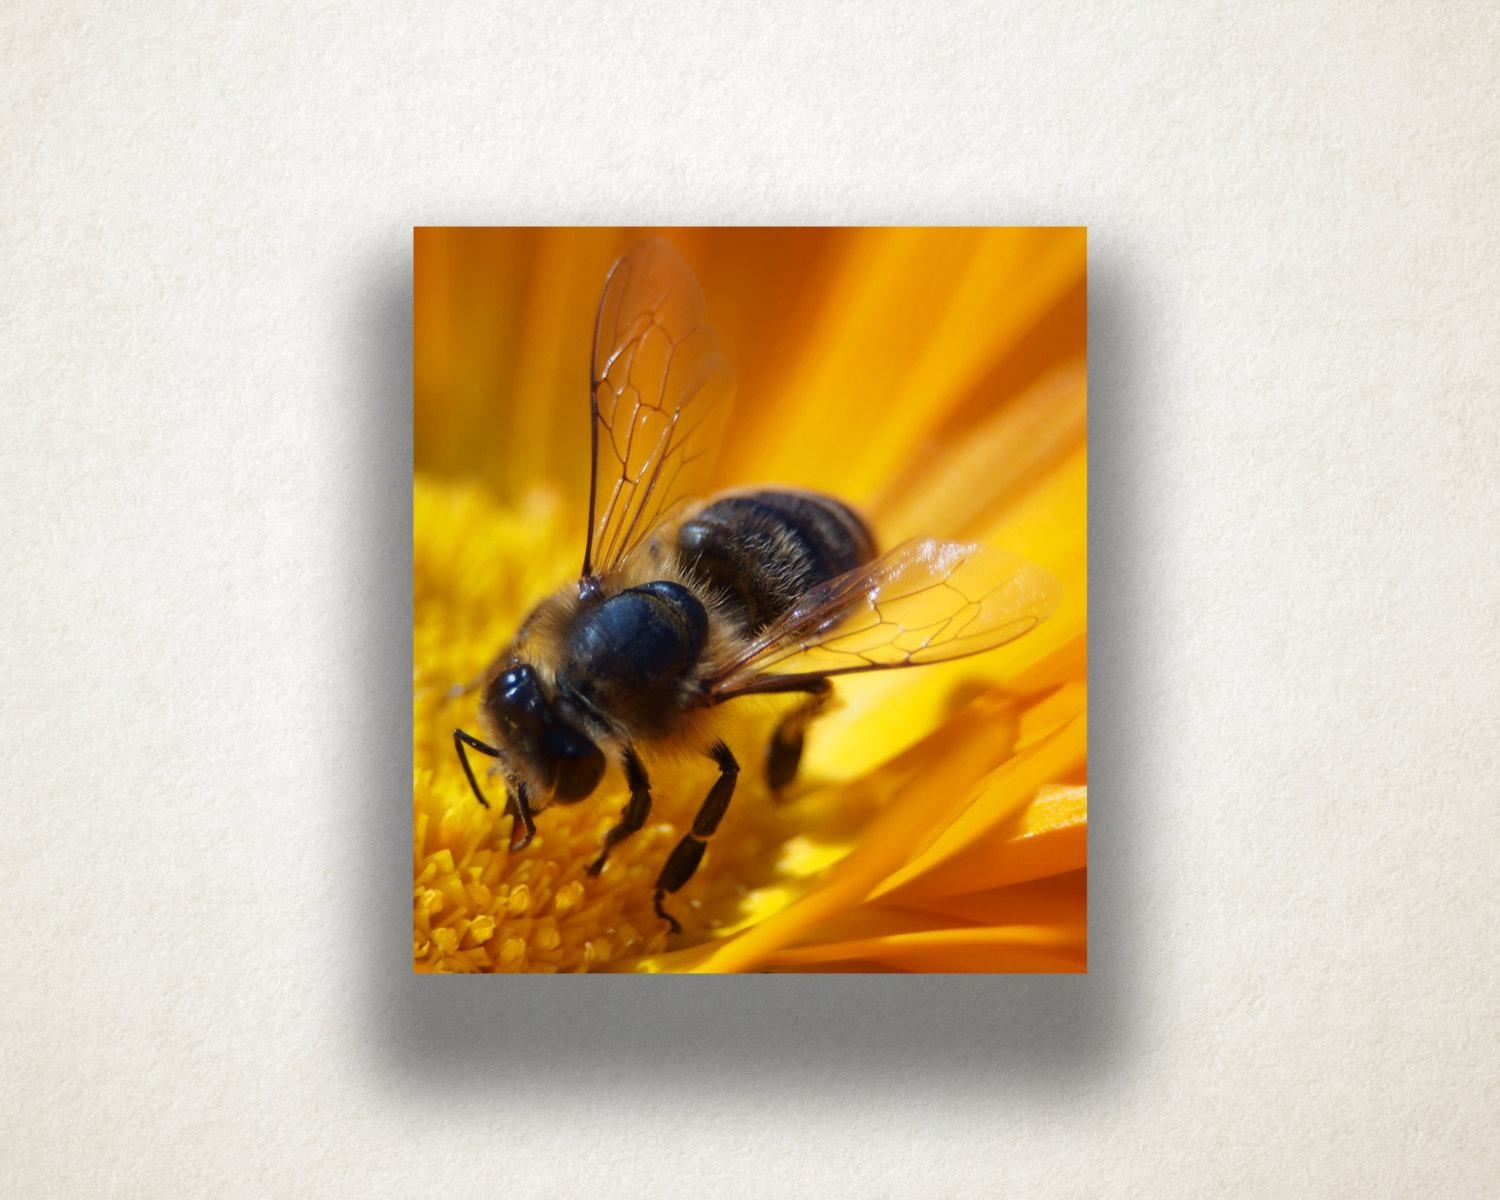 Flower And Bee Canvas Art, Bee Close Up Wall Art, Insect Canvas For Insect Wall Art (Image 5 of 20)